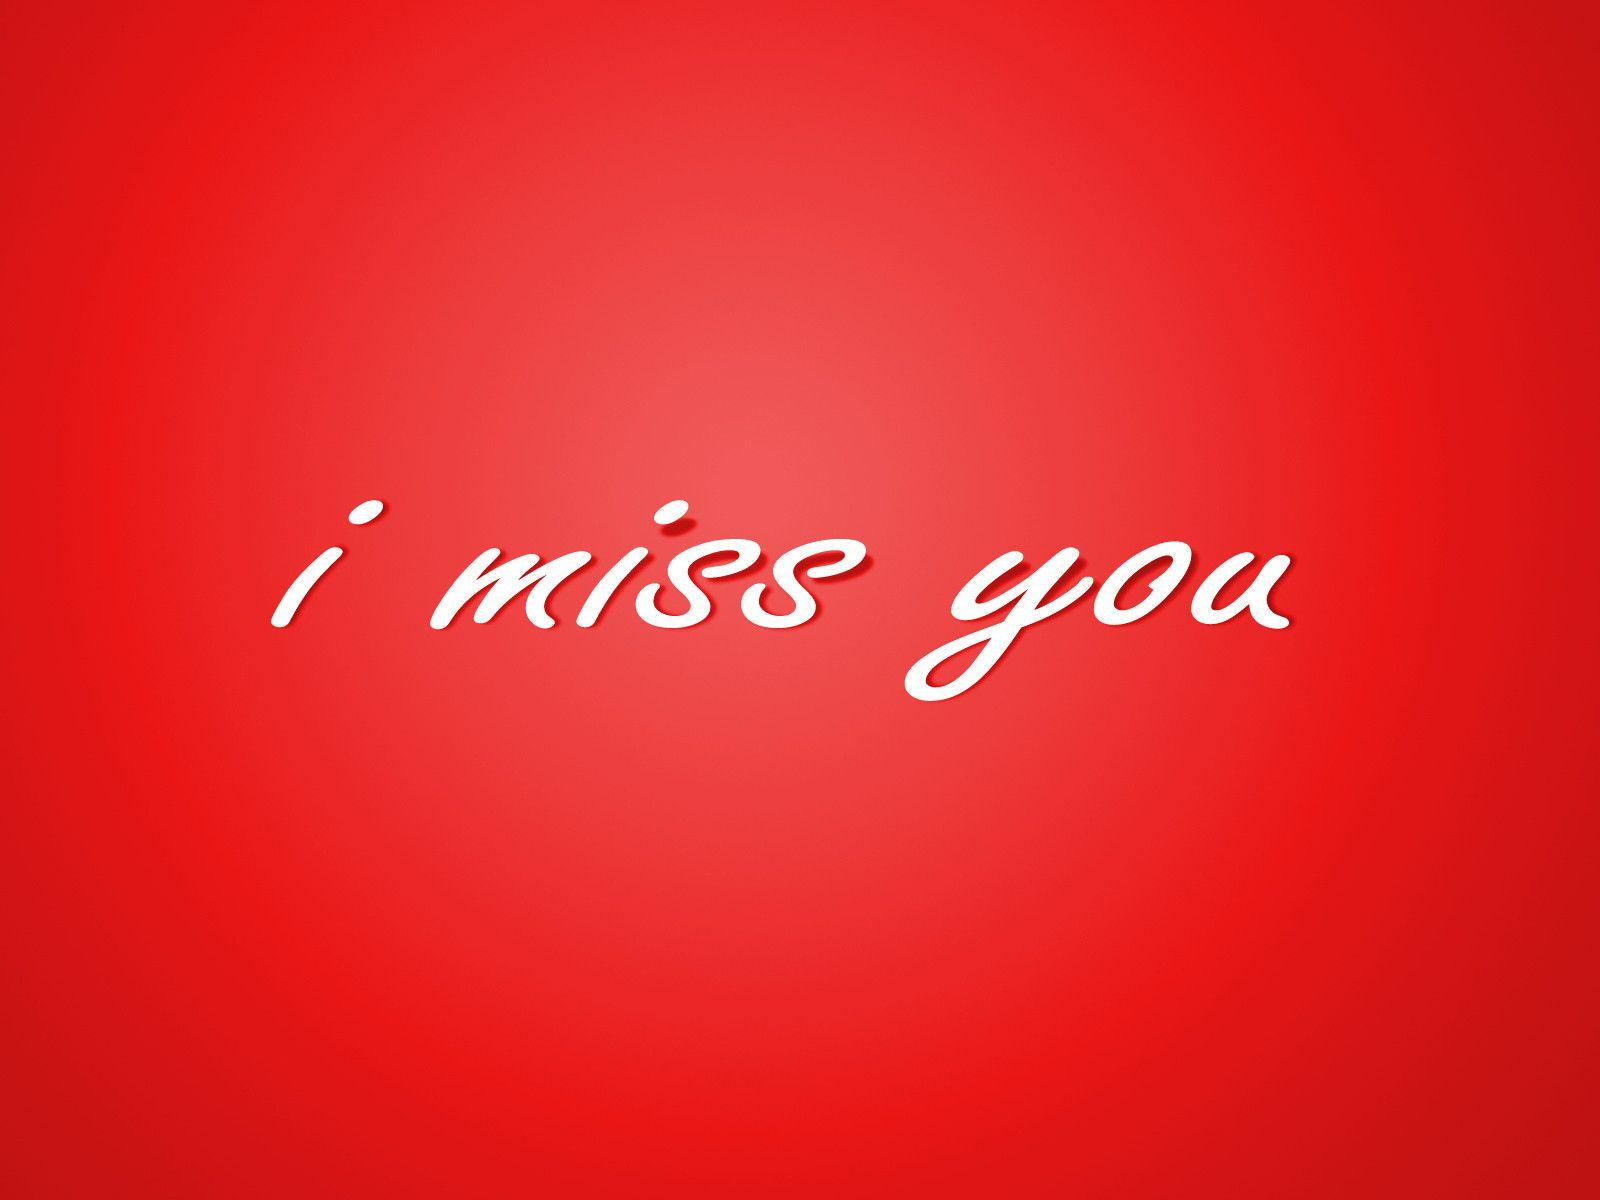 Wallpaper download i miss you - I Miss You Wallpaper In Red Background Hd Wallpapers Desktop